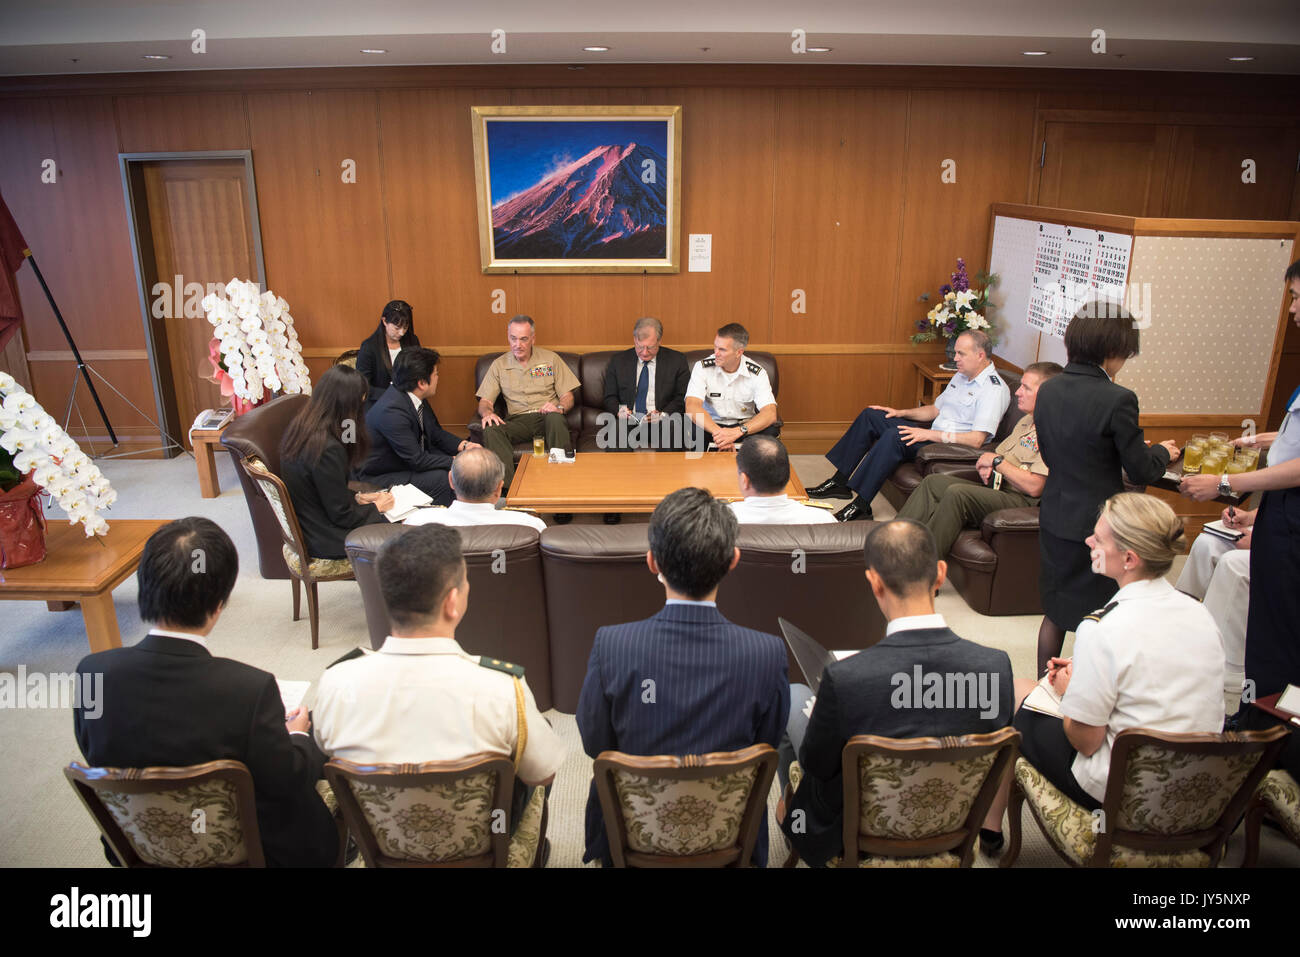 Tokyo, Japan. 18th Aug, 2017. U.S. Chairman of the Joint Chiefs Gen. Joseph Dunford and delegation meets with Japanese Defence Minister Tomohiro Yamamoto at the Ministry of Defense August 18, 2017 in Tokyo, Japan. Dunford is in Japan to meet with Japanese leaders and to discuss defusing the situation in North Korea. Credit: Planetpix/Alamy Live News - Stock Image